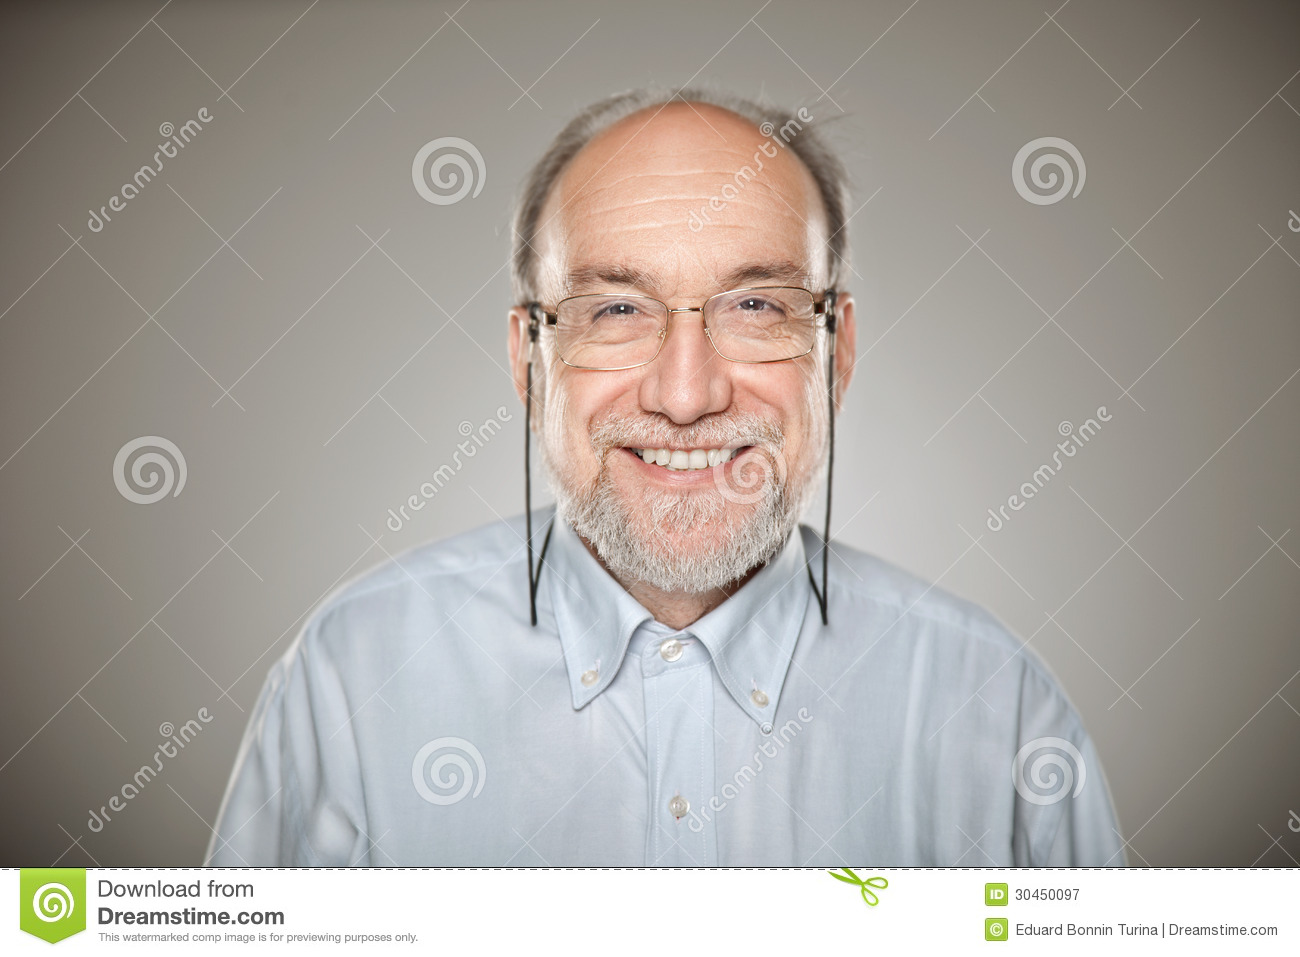 1213526ece8 Portrait Of Old Man Taking Glasses And Smiling Stock Image - Image ...